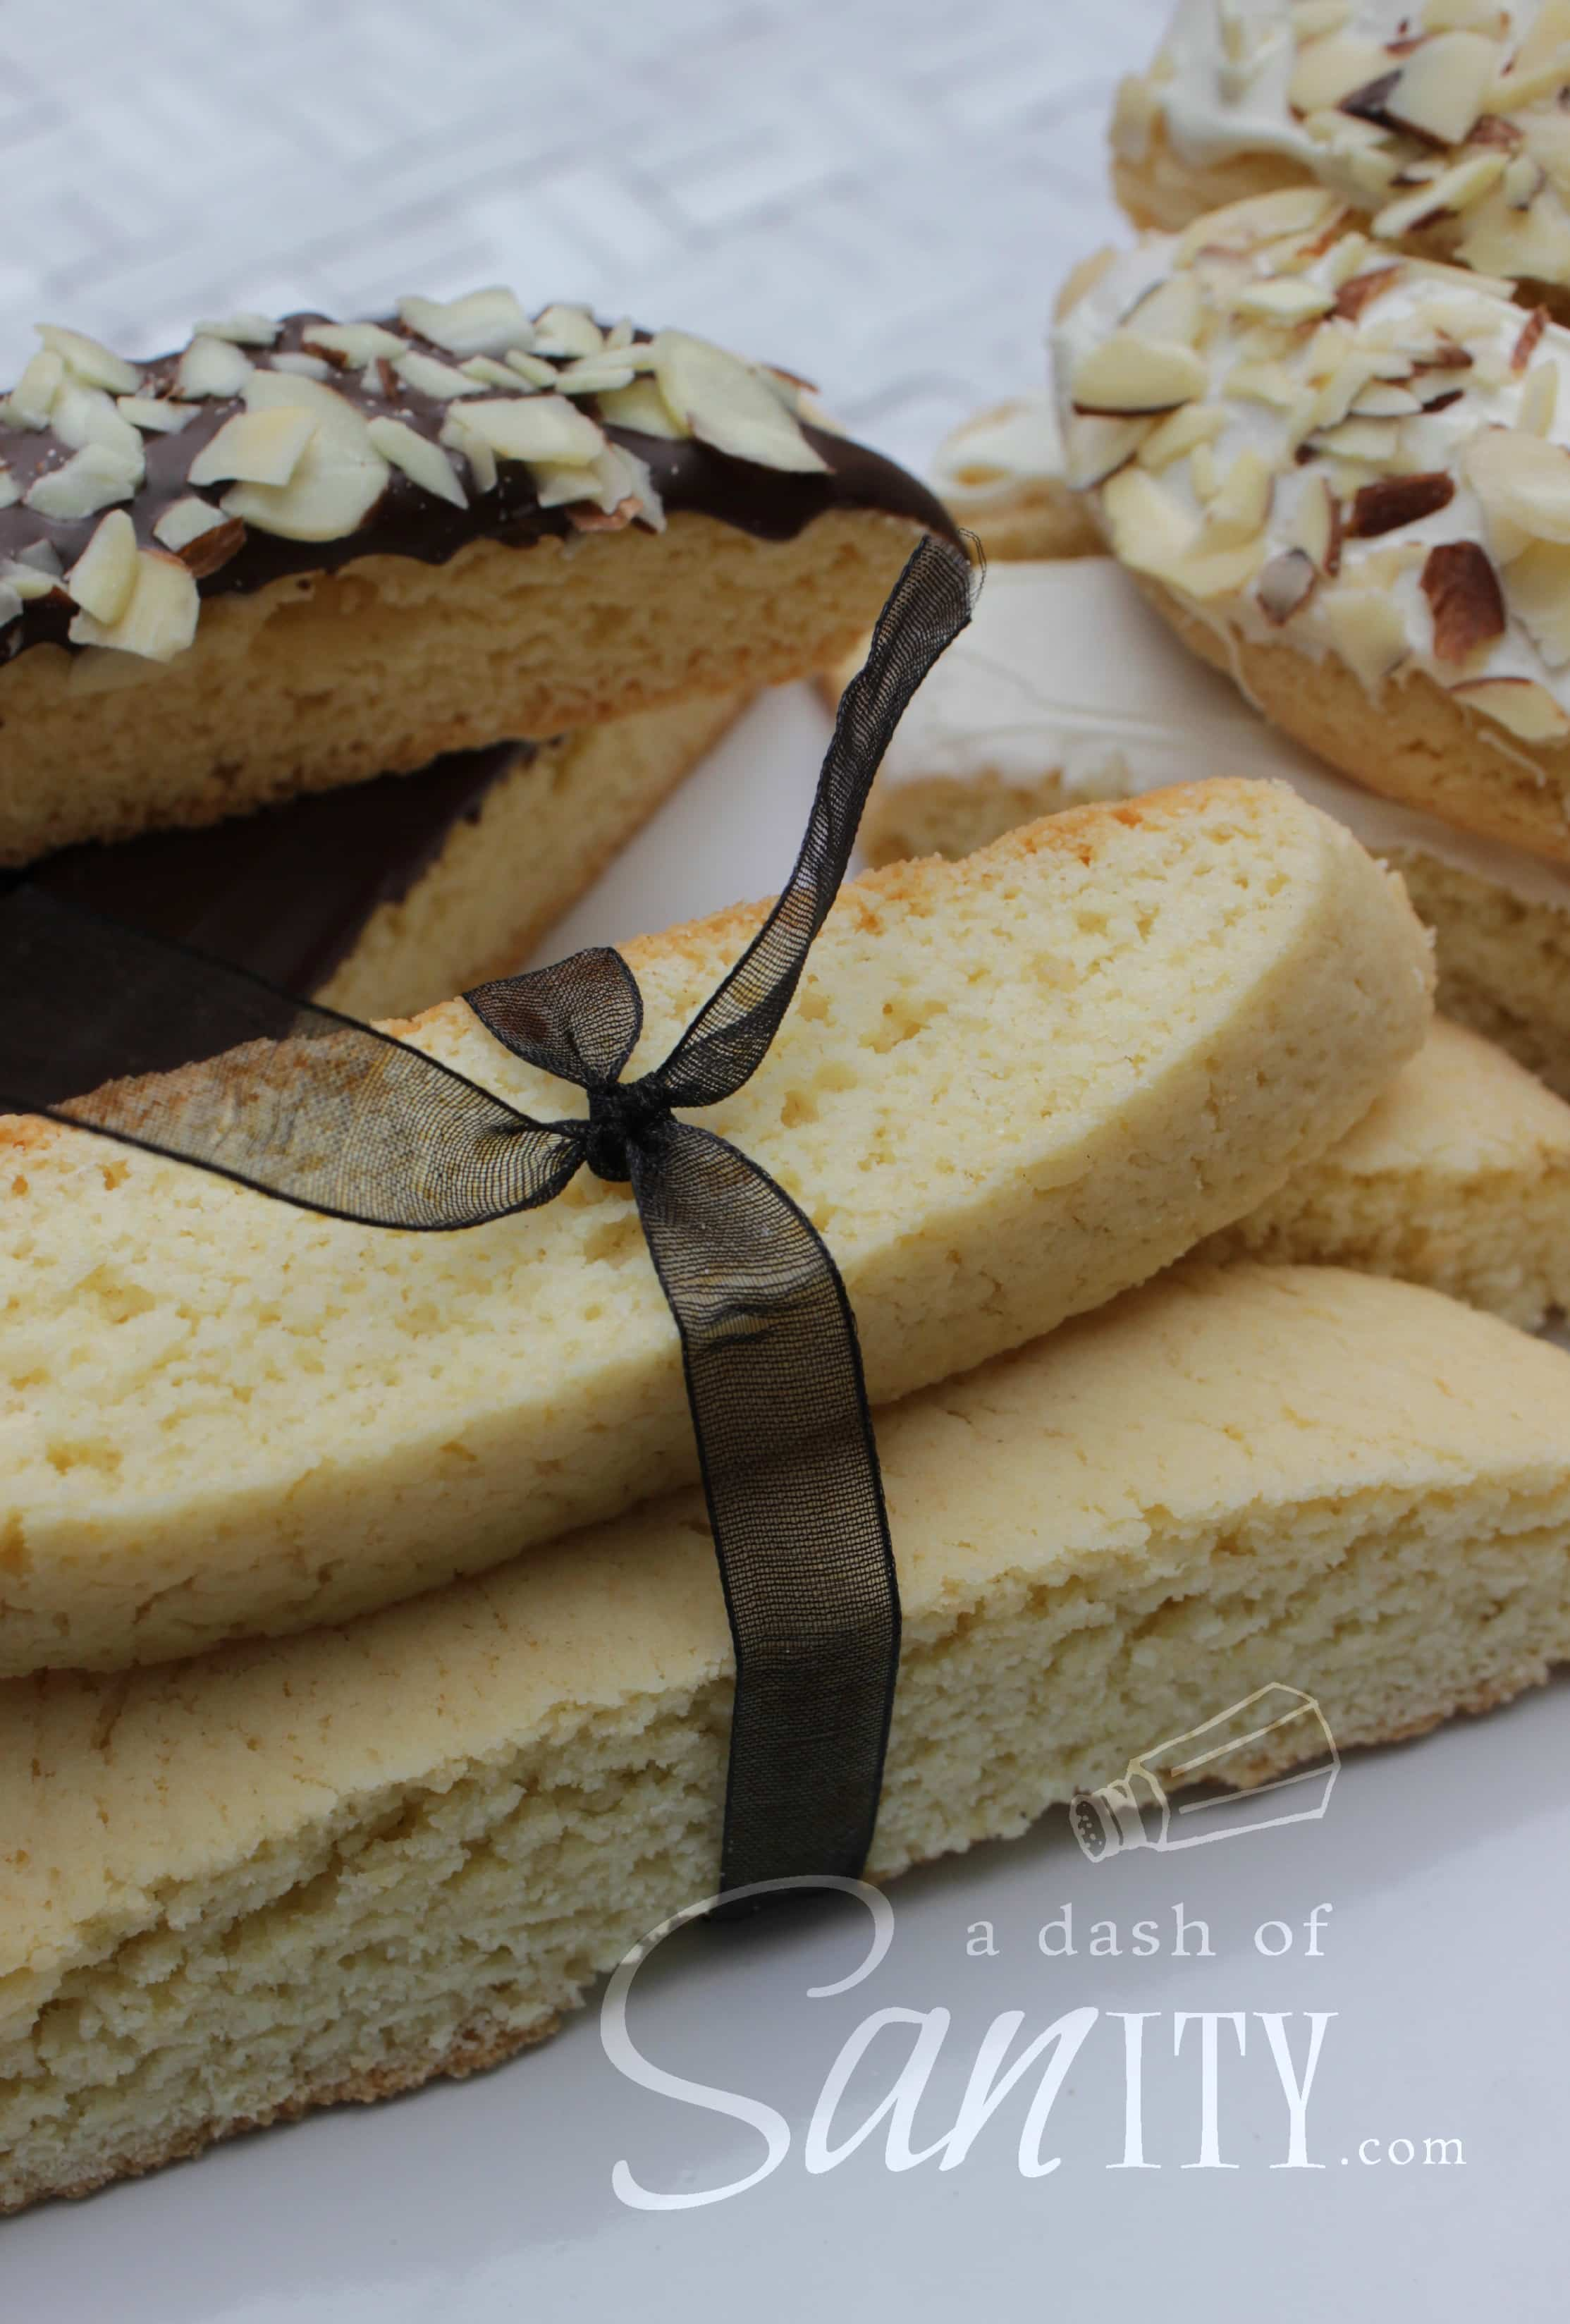 Italian Almond Biscotti is an almond-flavored twist on the classic Italian cookies. Crisp and sweet, these are a perfect pairing with your morning coffee.